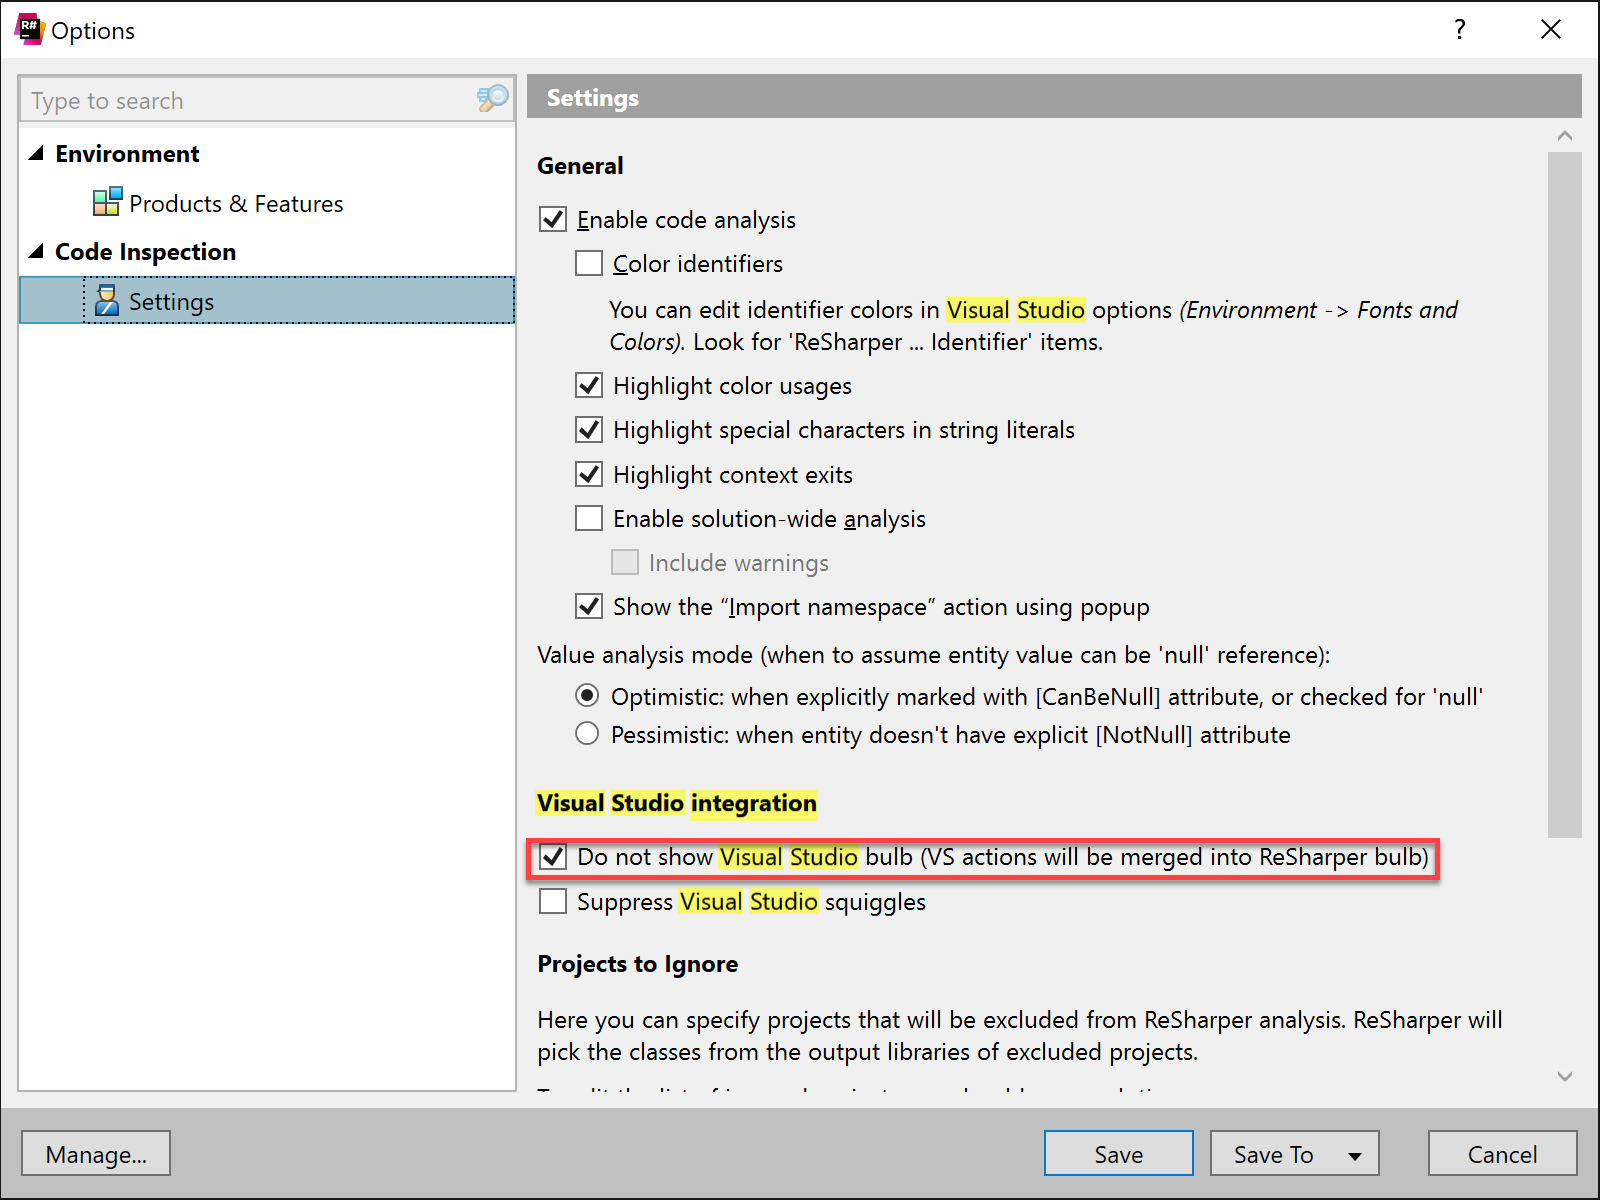 Visual Studio integration settings in ReSharper